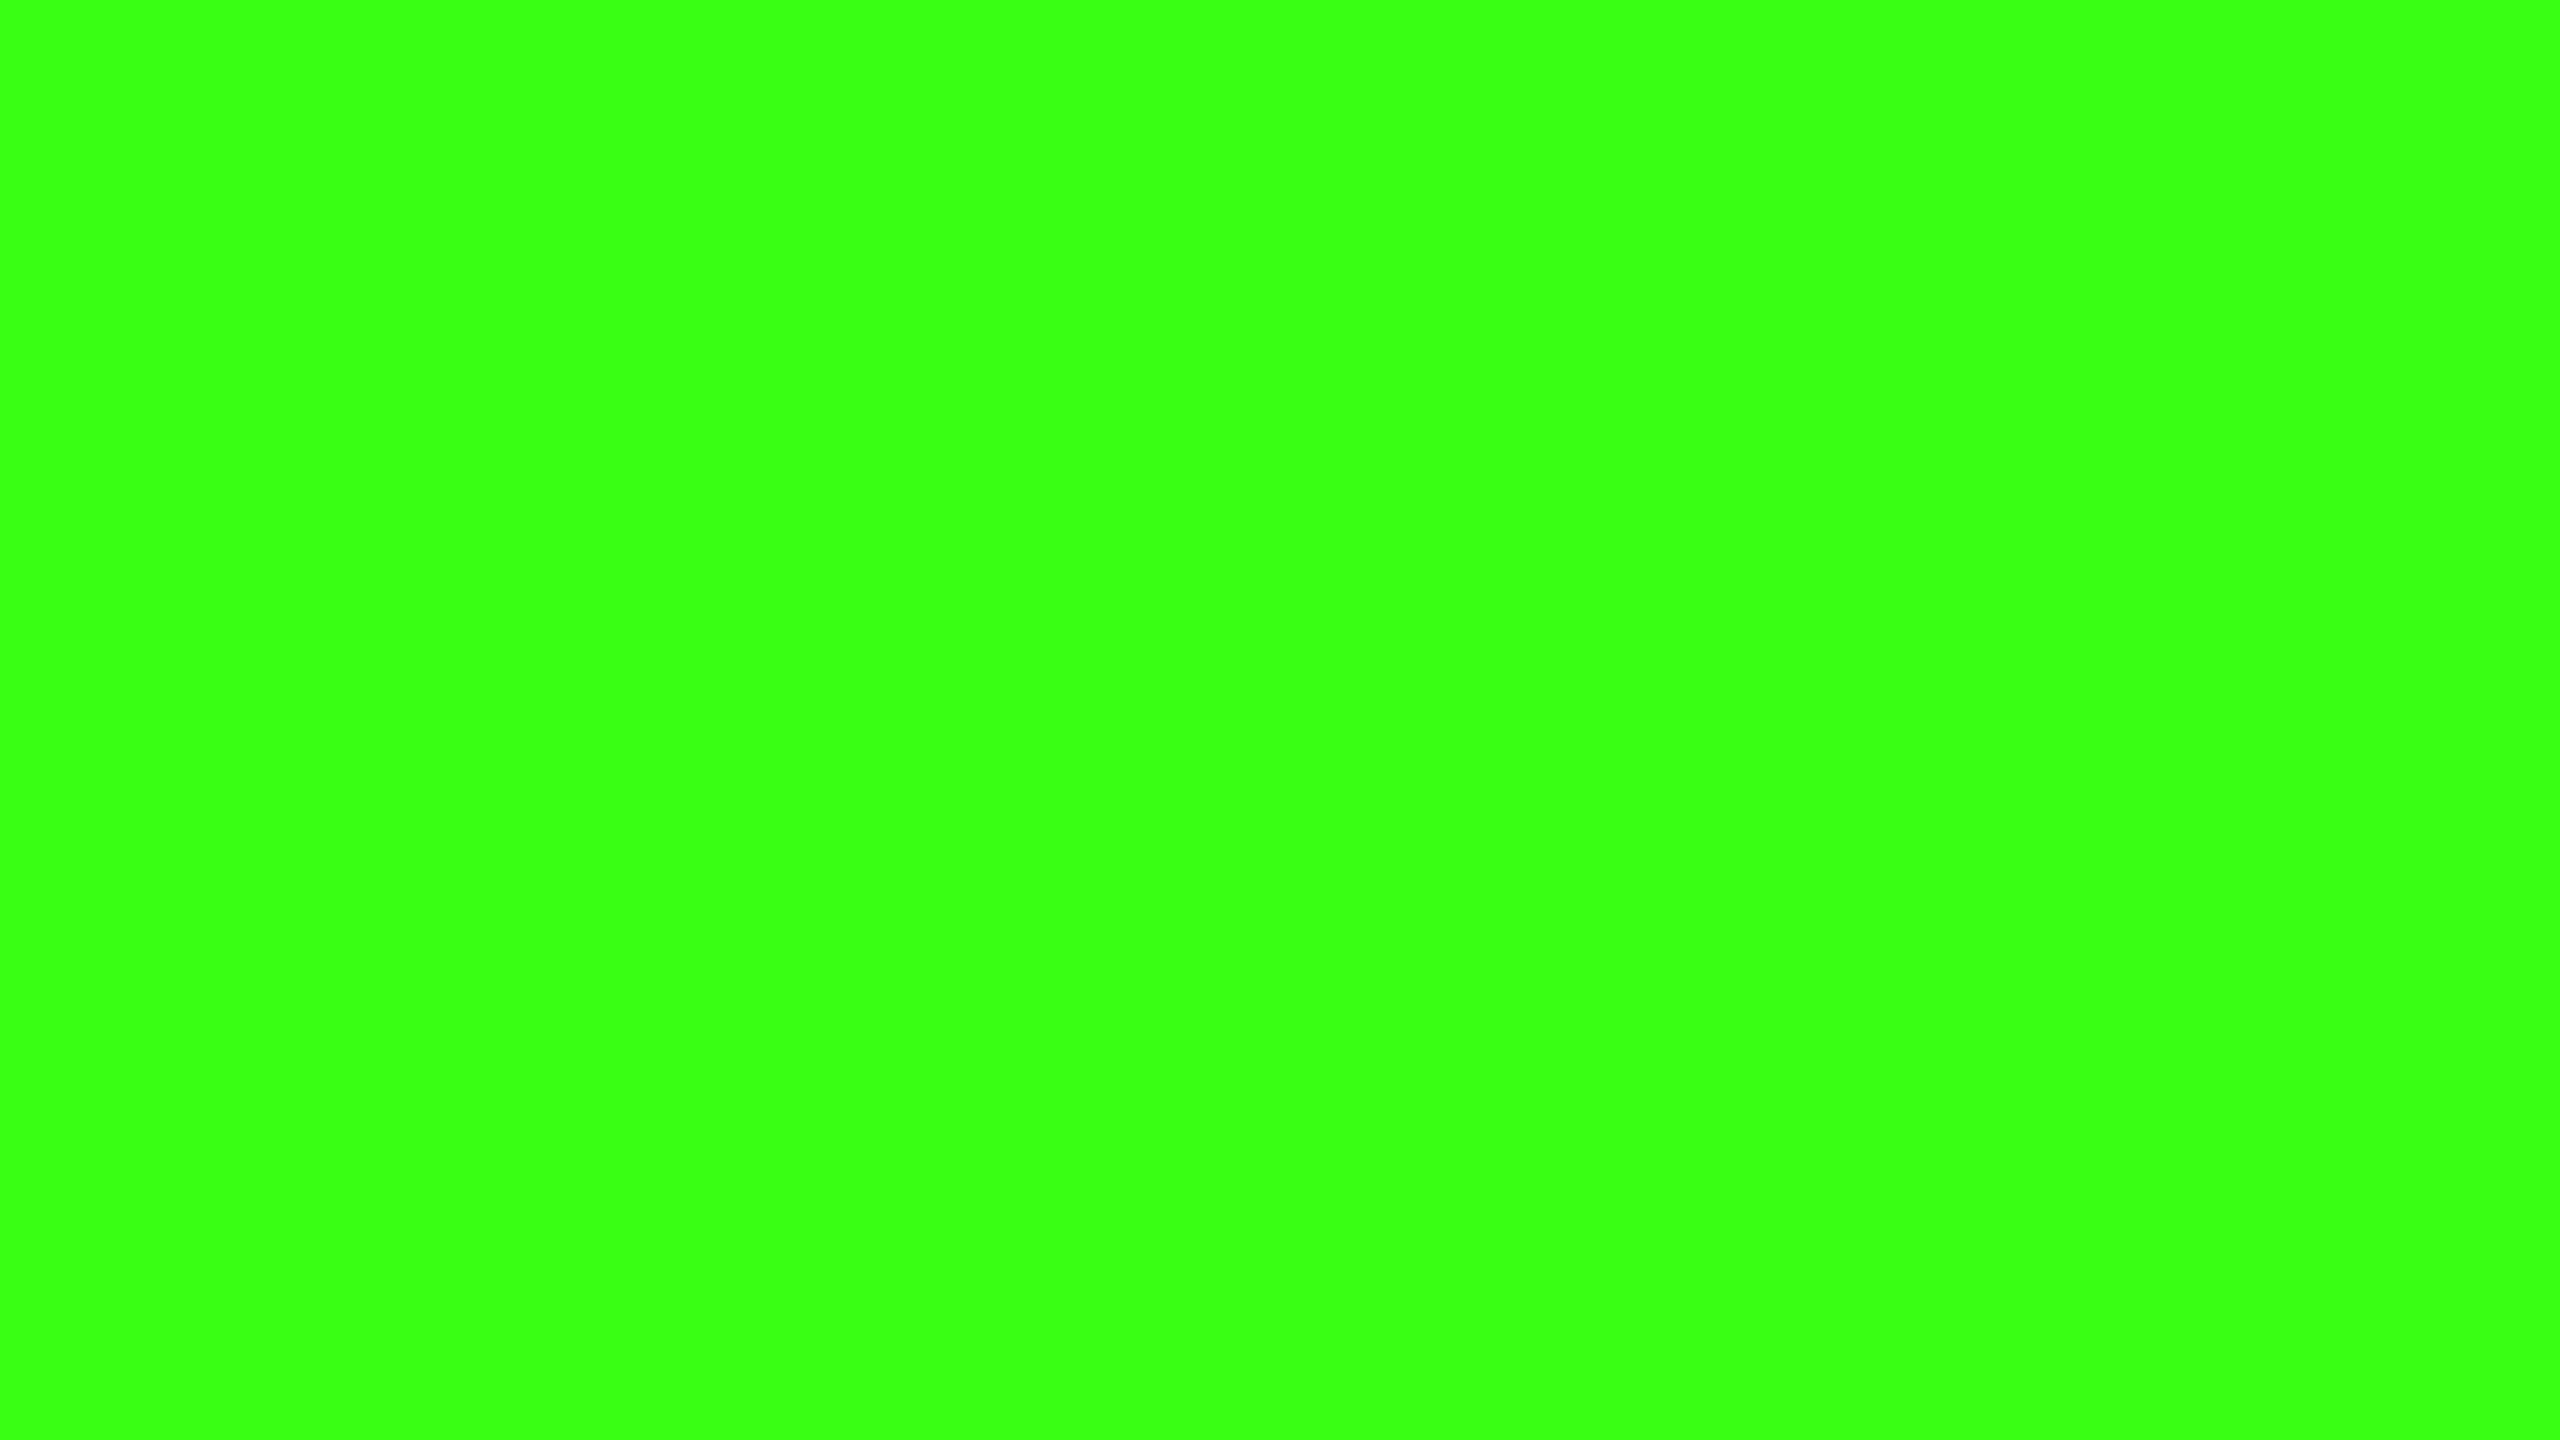 Solid Green Wallpapers Top Free Solid Green Backgrounds Wallpaperaccess